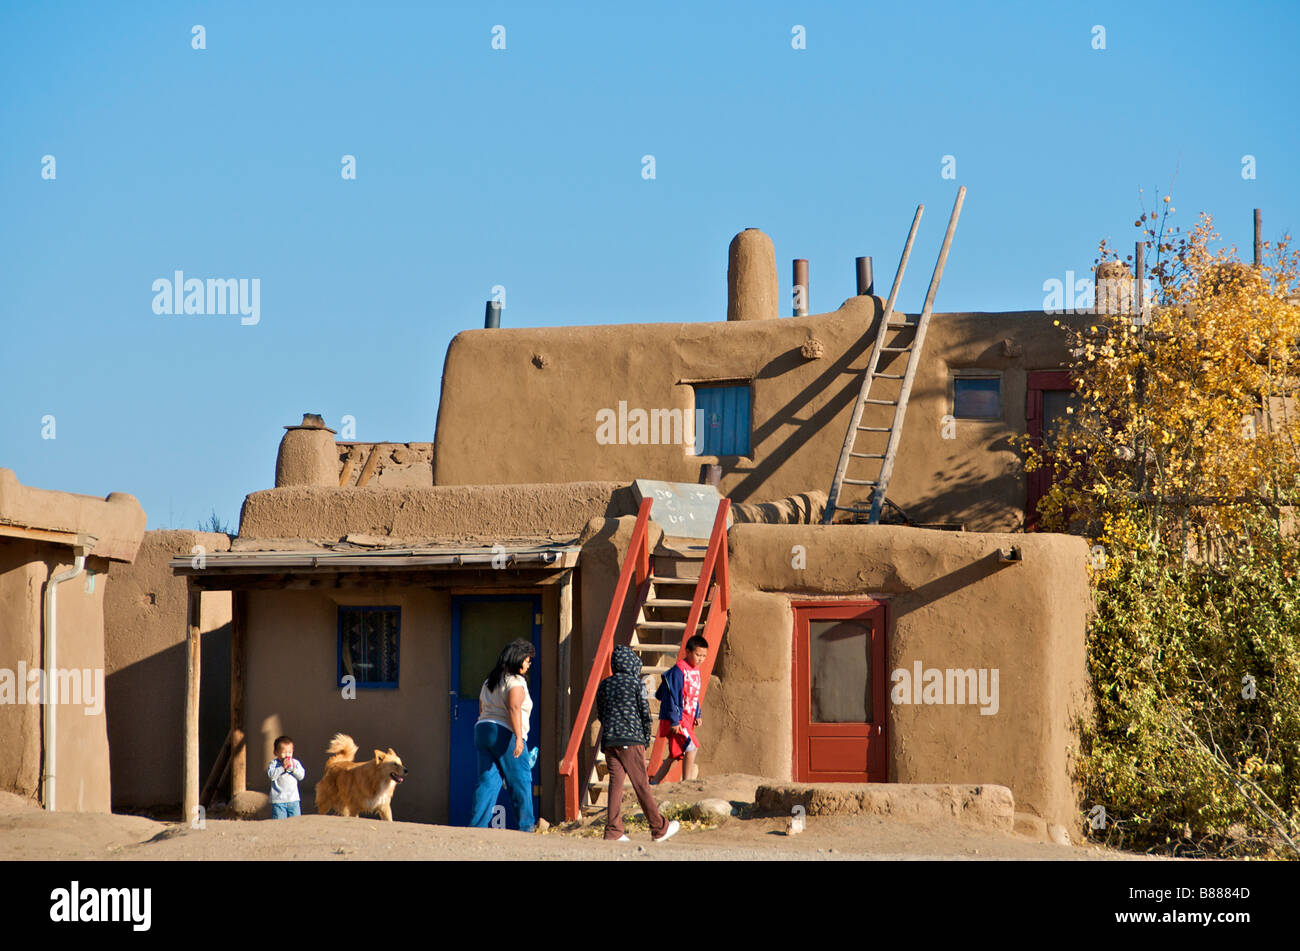 Inhabited adobe houses taos pueblo new mexico usa stock photo royalty free image 22309629 alamy - Pueblo adobe houses property ...